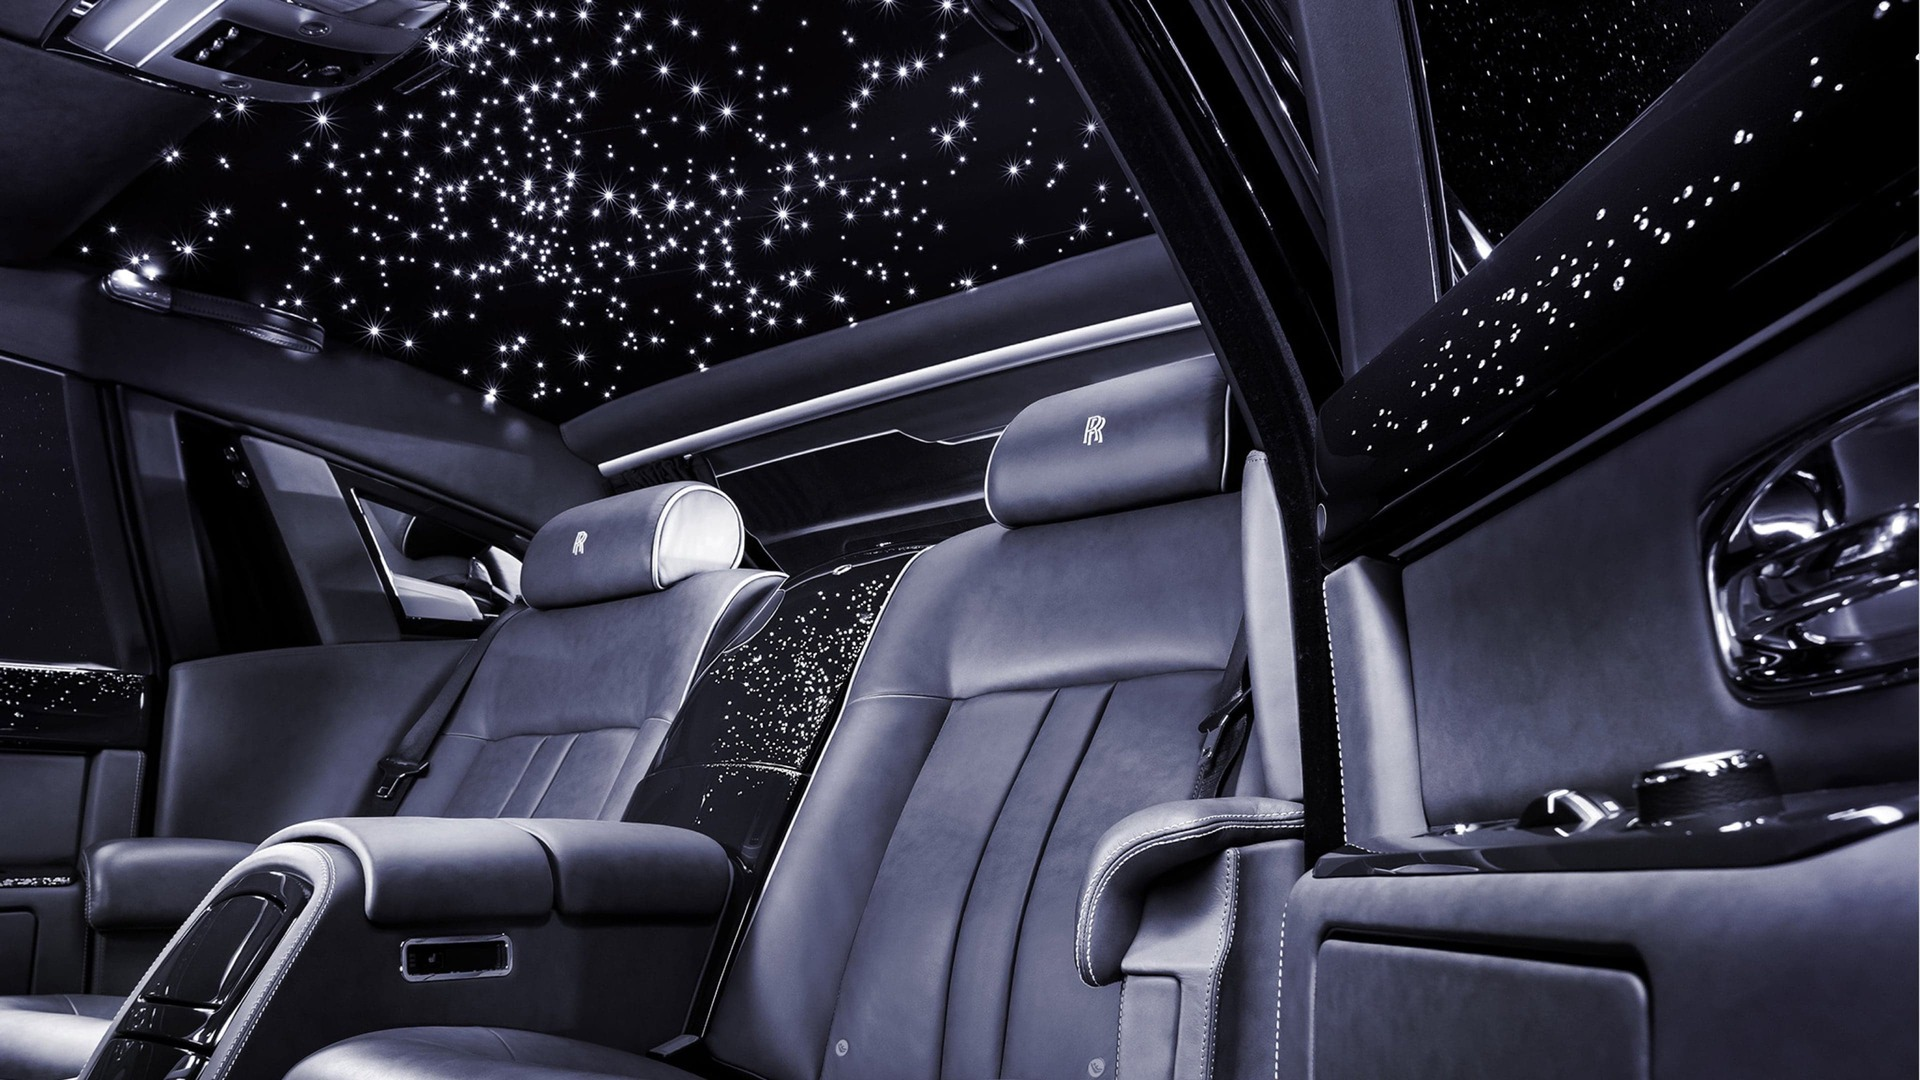 Interior shot of Rolls-Royce Phantom showing the starlight headliner